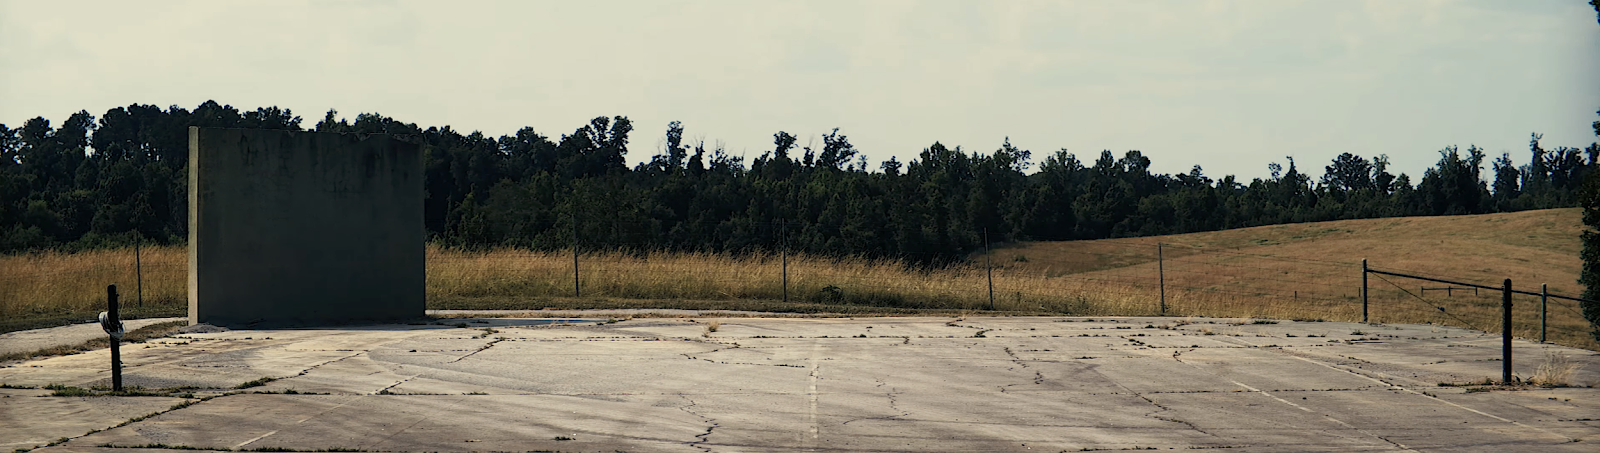 Wide frame image of abandoned lot in a field